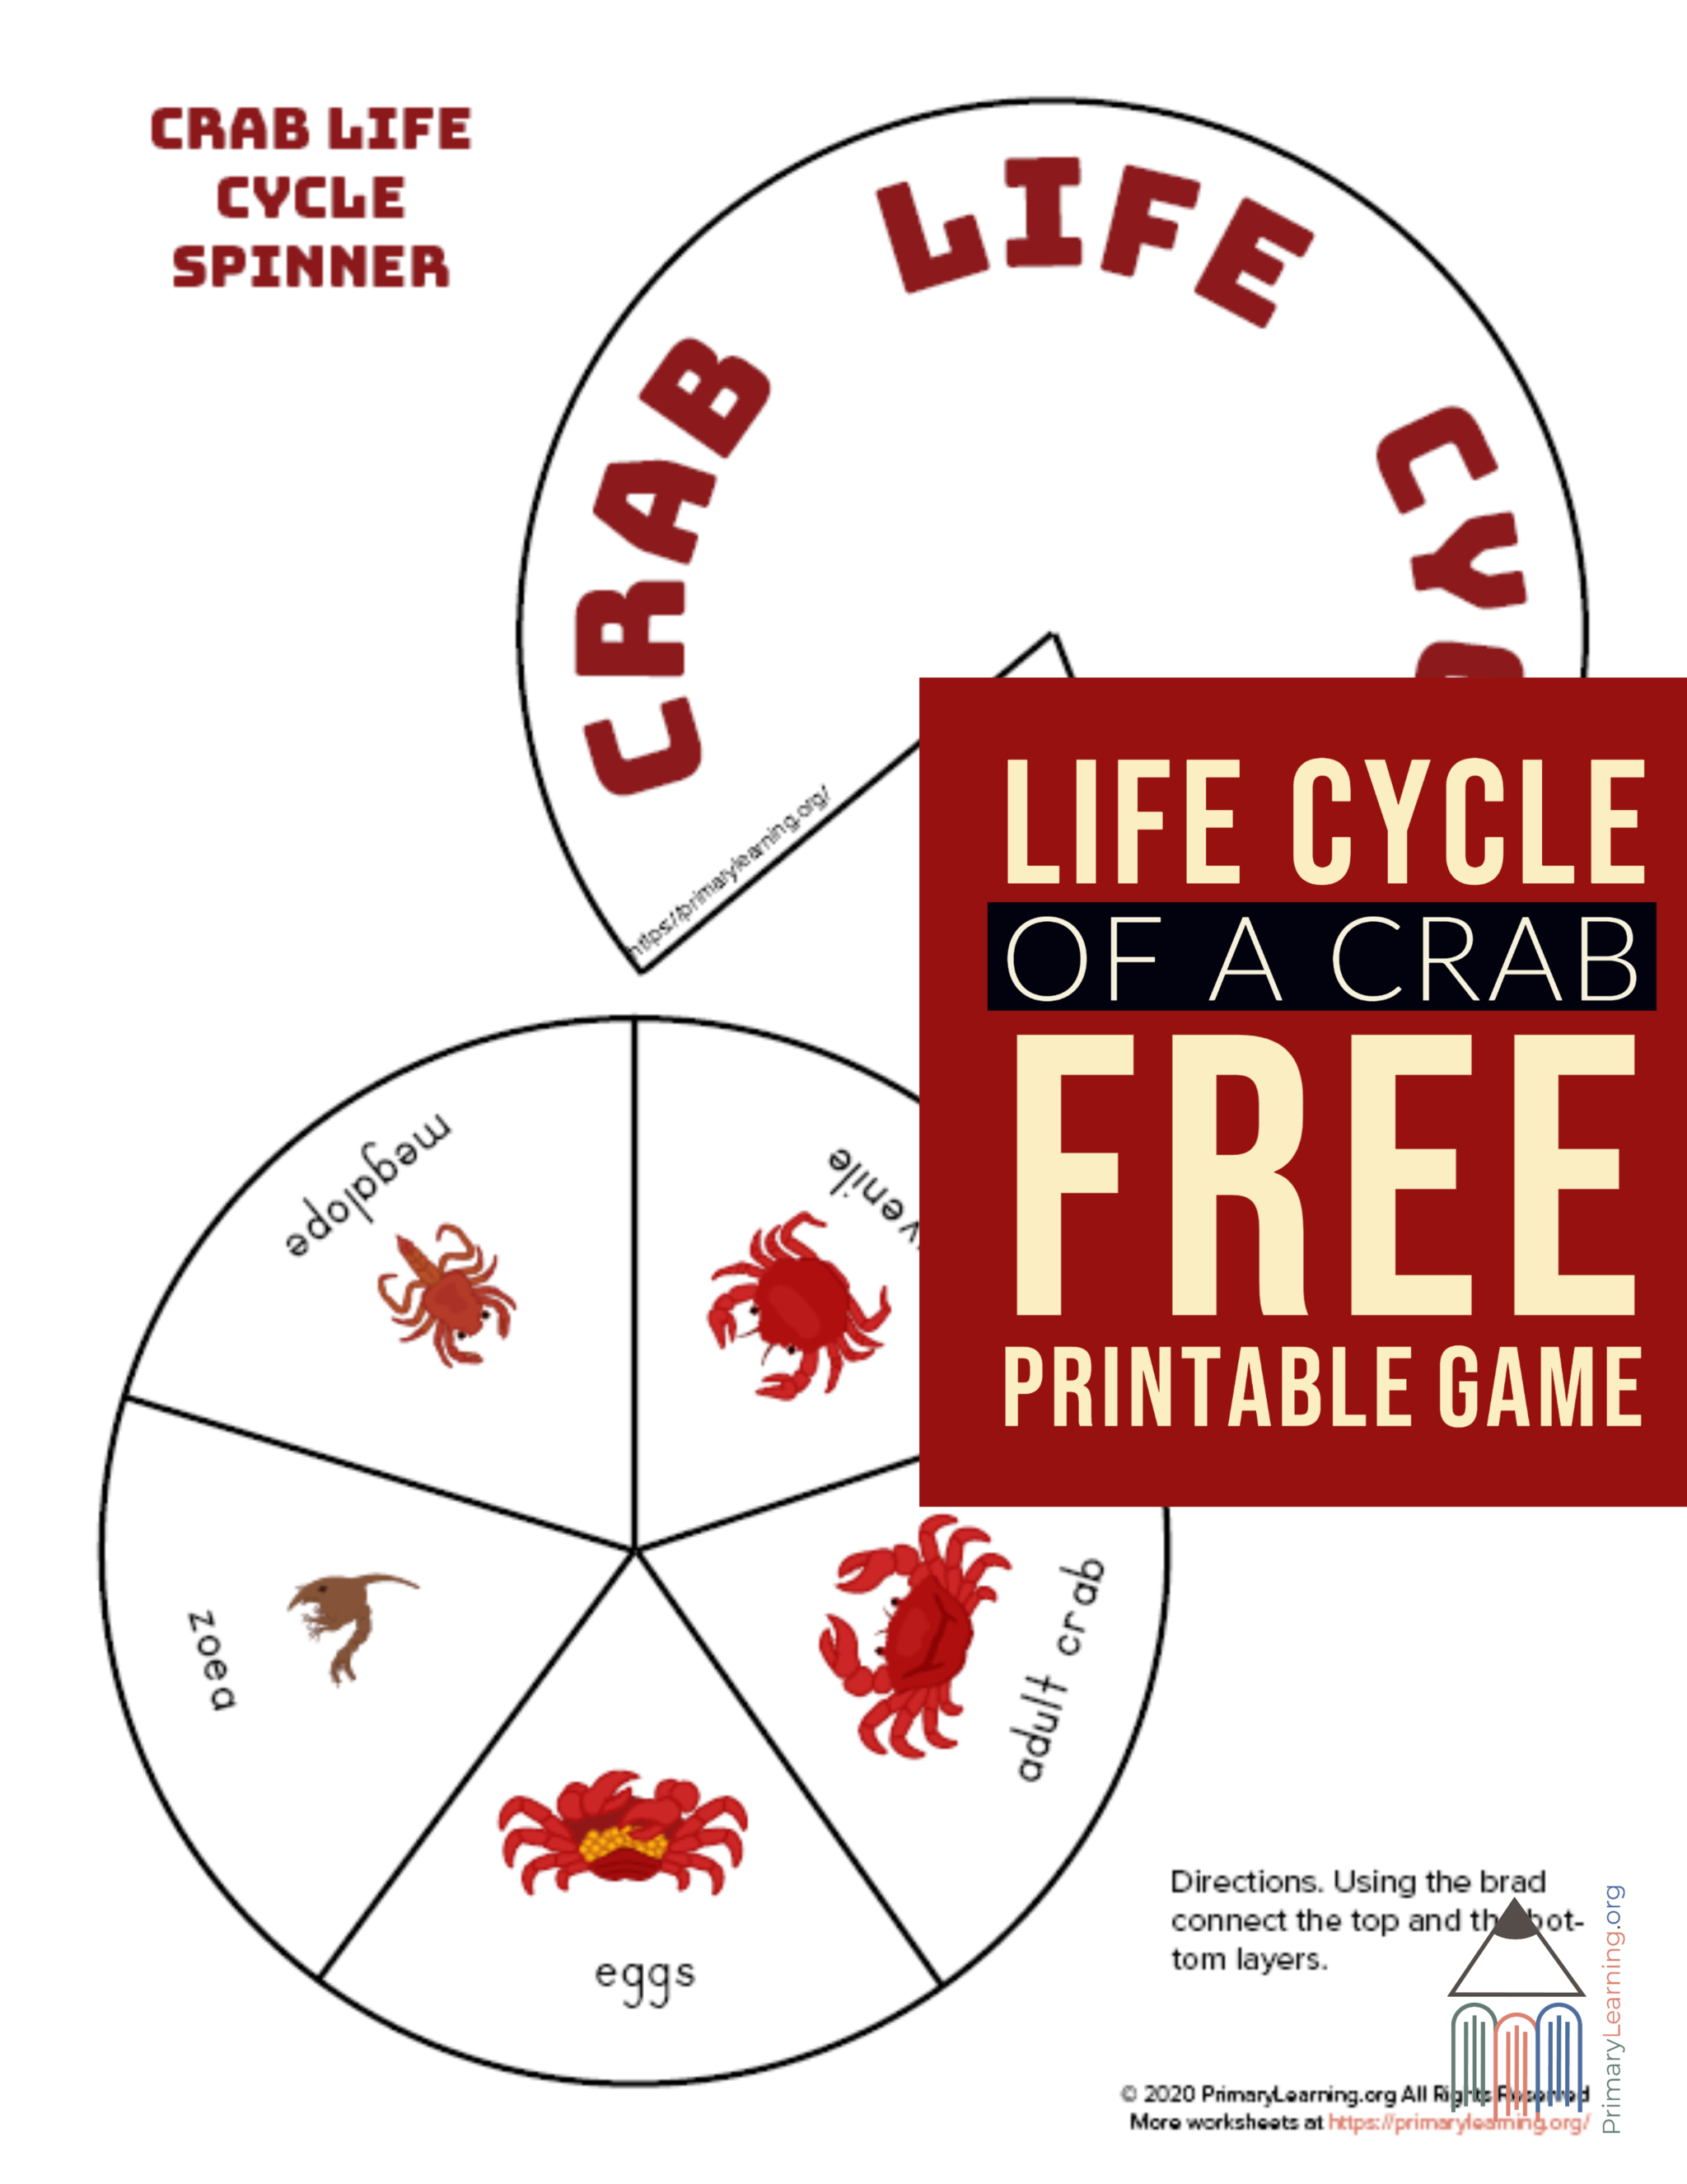 Crab Life Cycle Spinner